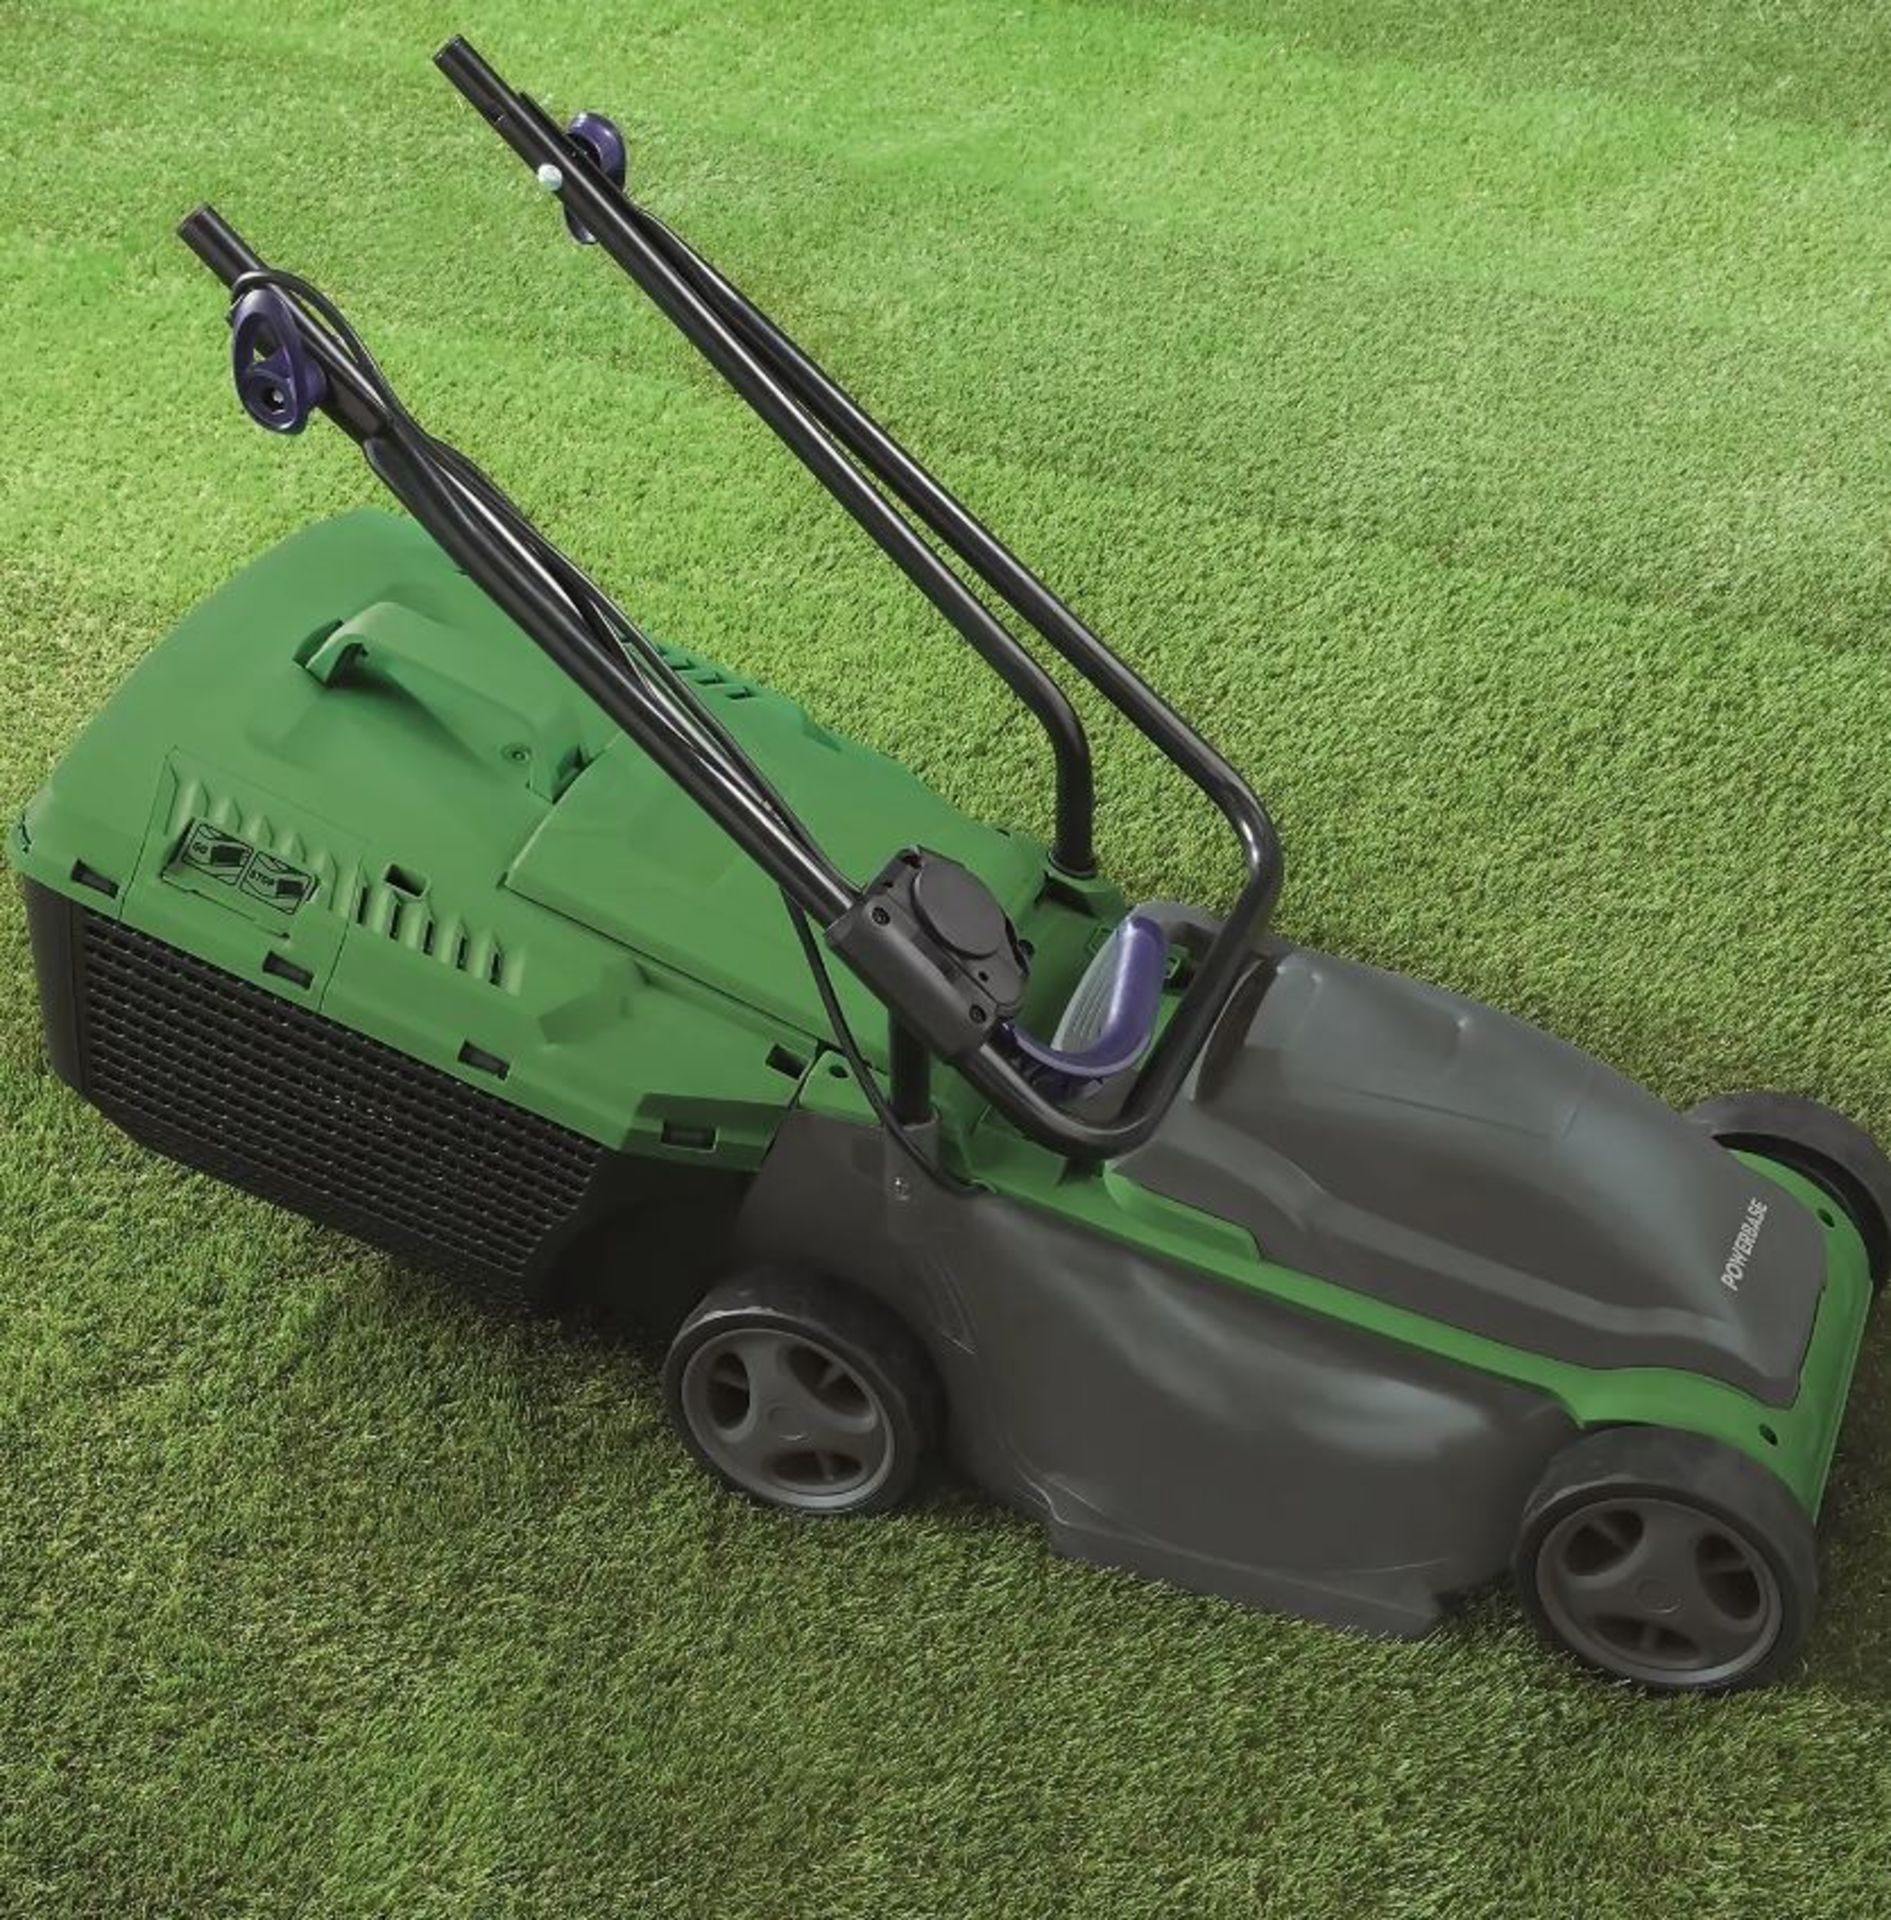 (P8) 1x Powerbase 32cm 1200W Electric Rotary Lawnmower RRP £59. Contents Appear As New, Clean & Not - Image 2 of 4